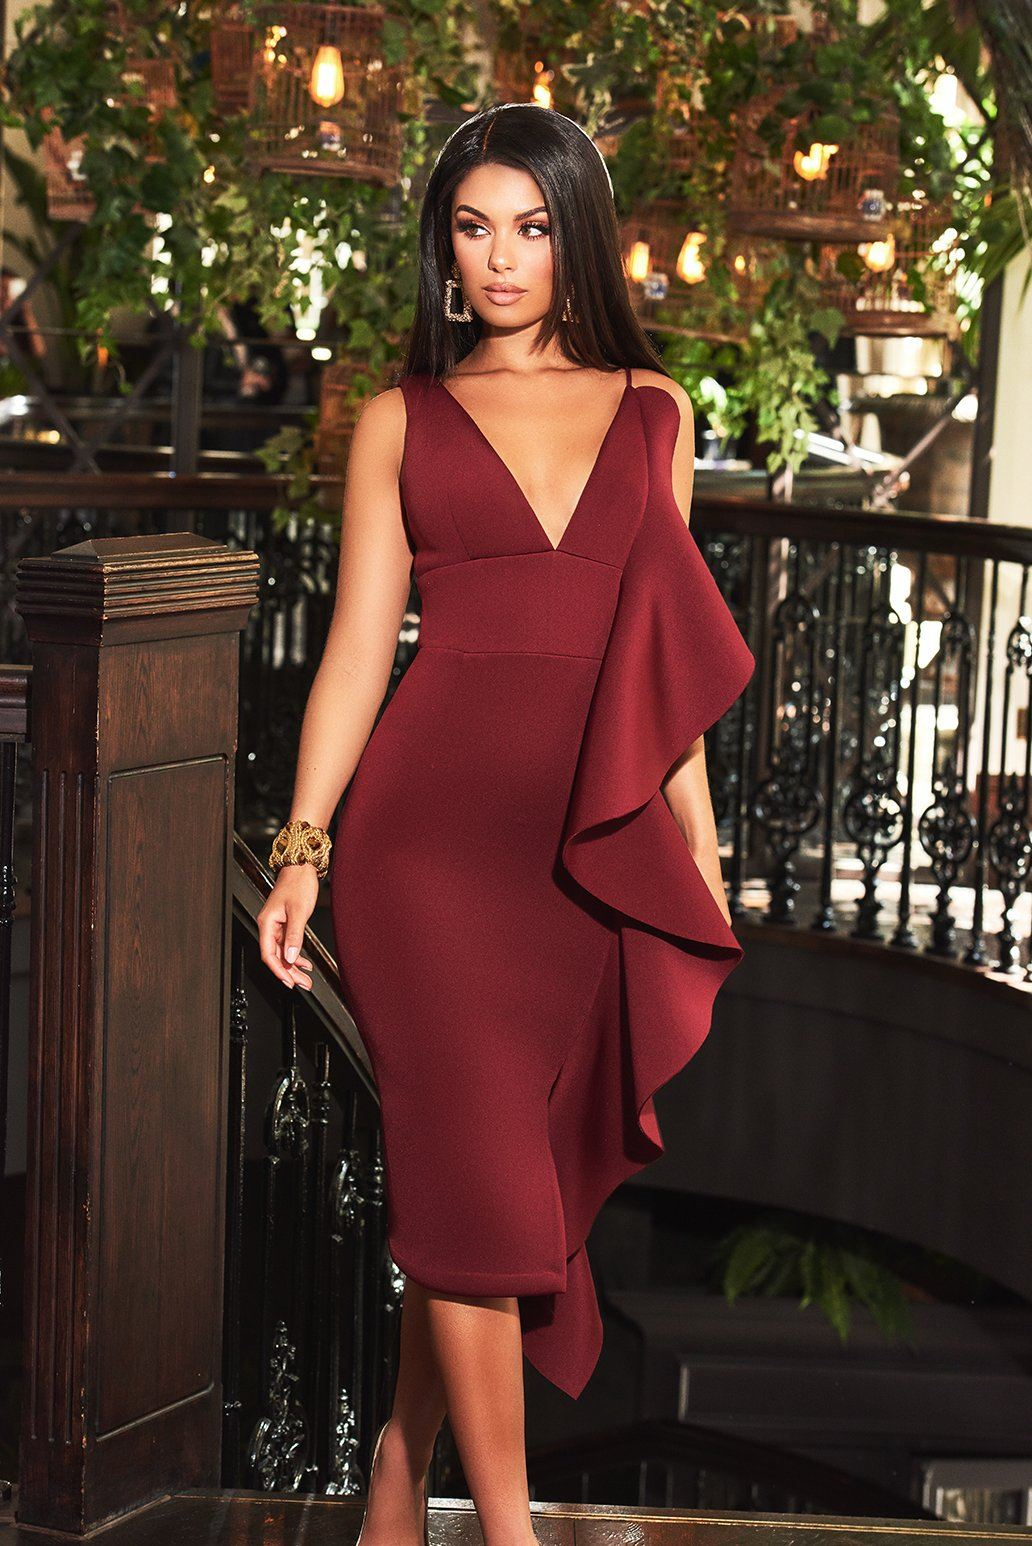 Scuba Draped Frill Midi Dress in Burgundy